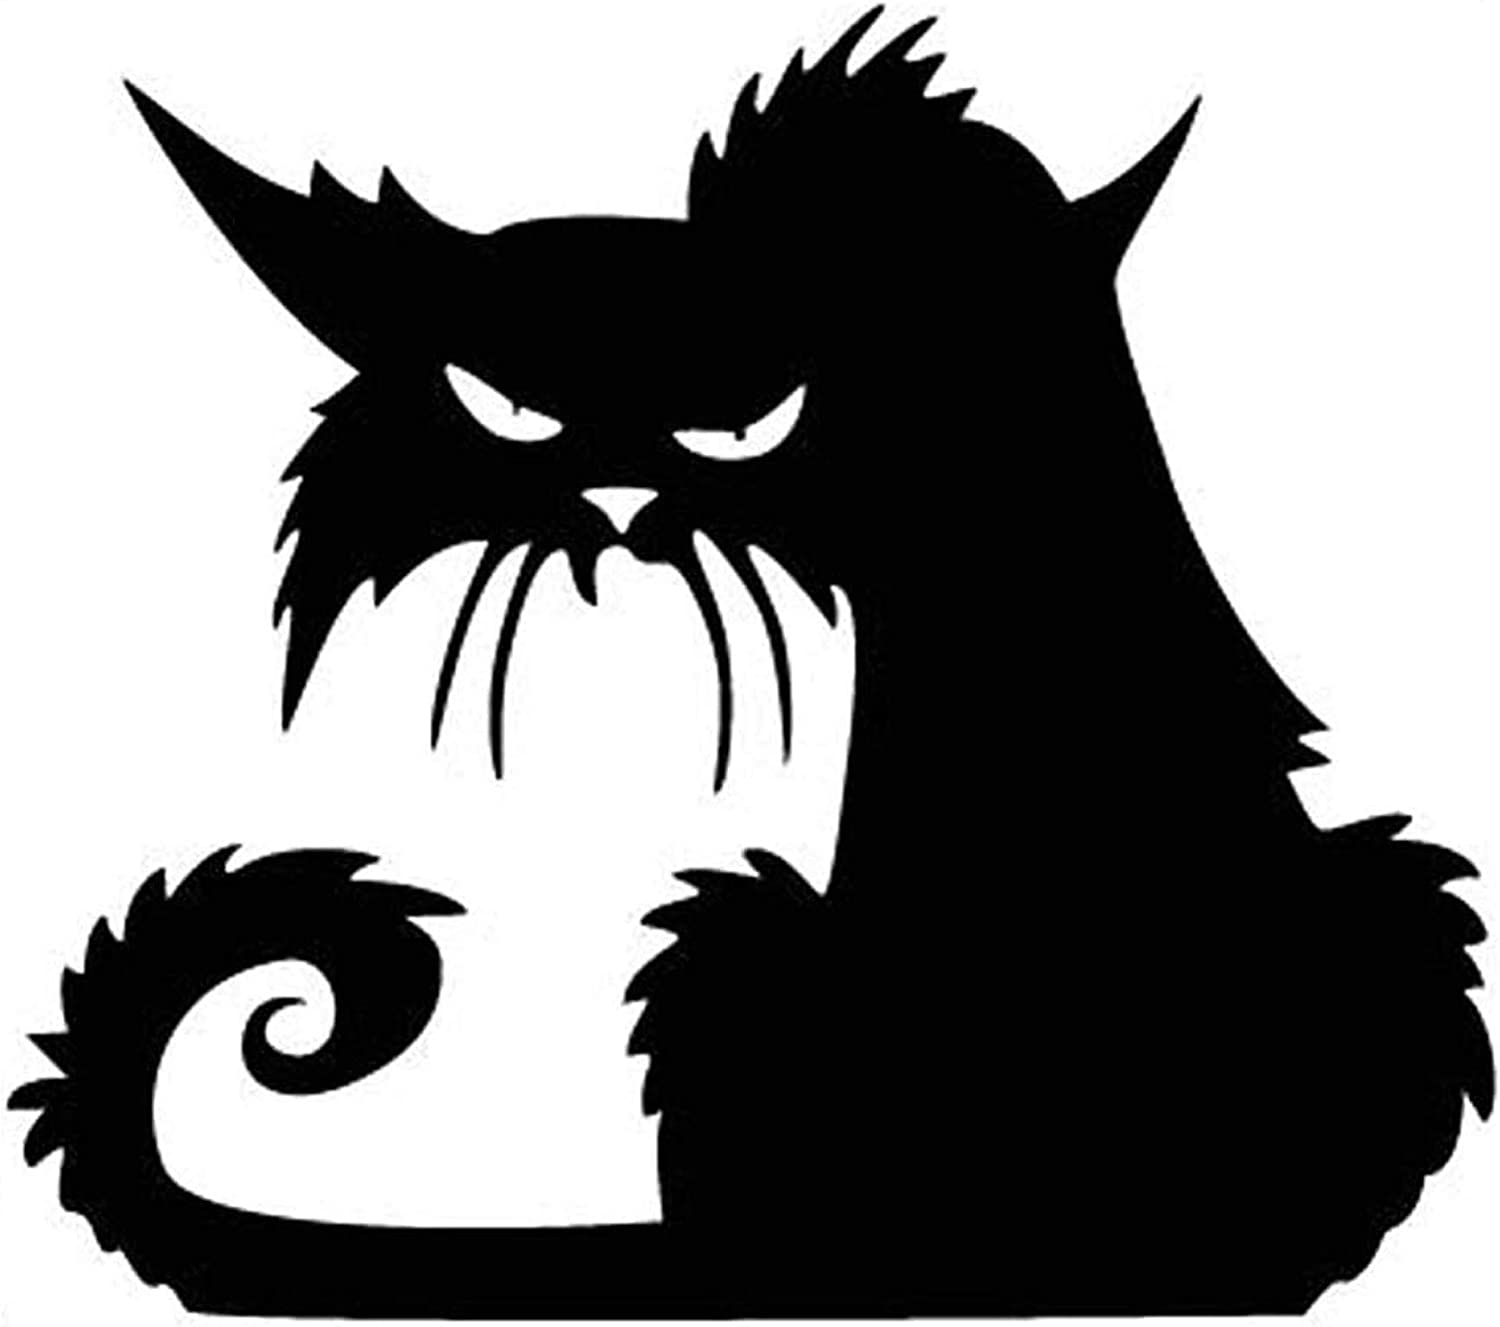 Fashionclubs Vinly Black Cat Removable Window Wall Sticker For Halloween Home Decoration,14.513.5cm